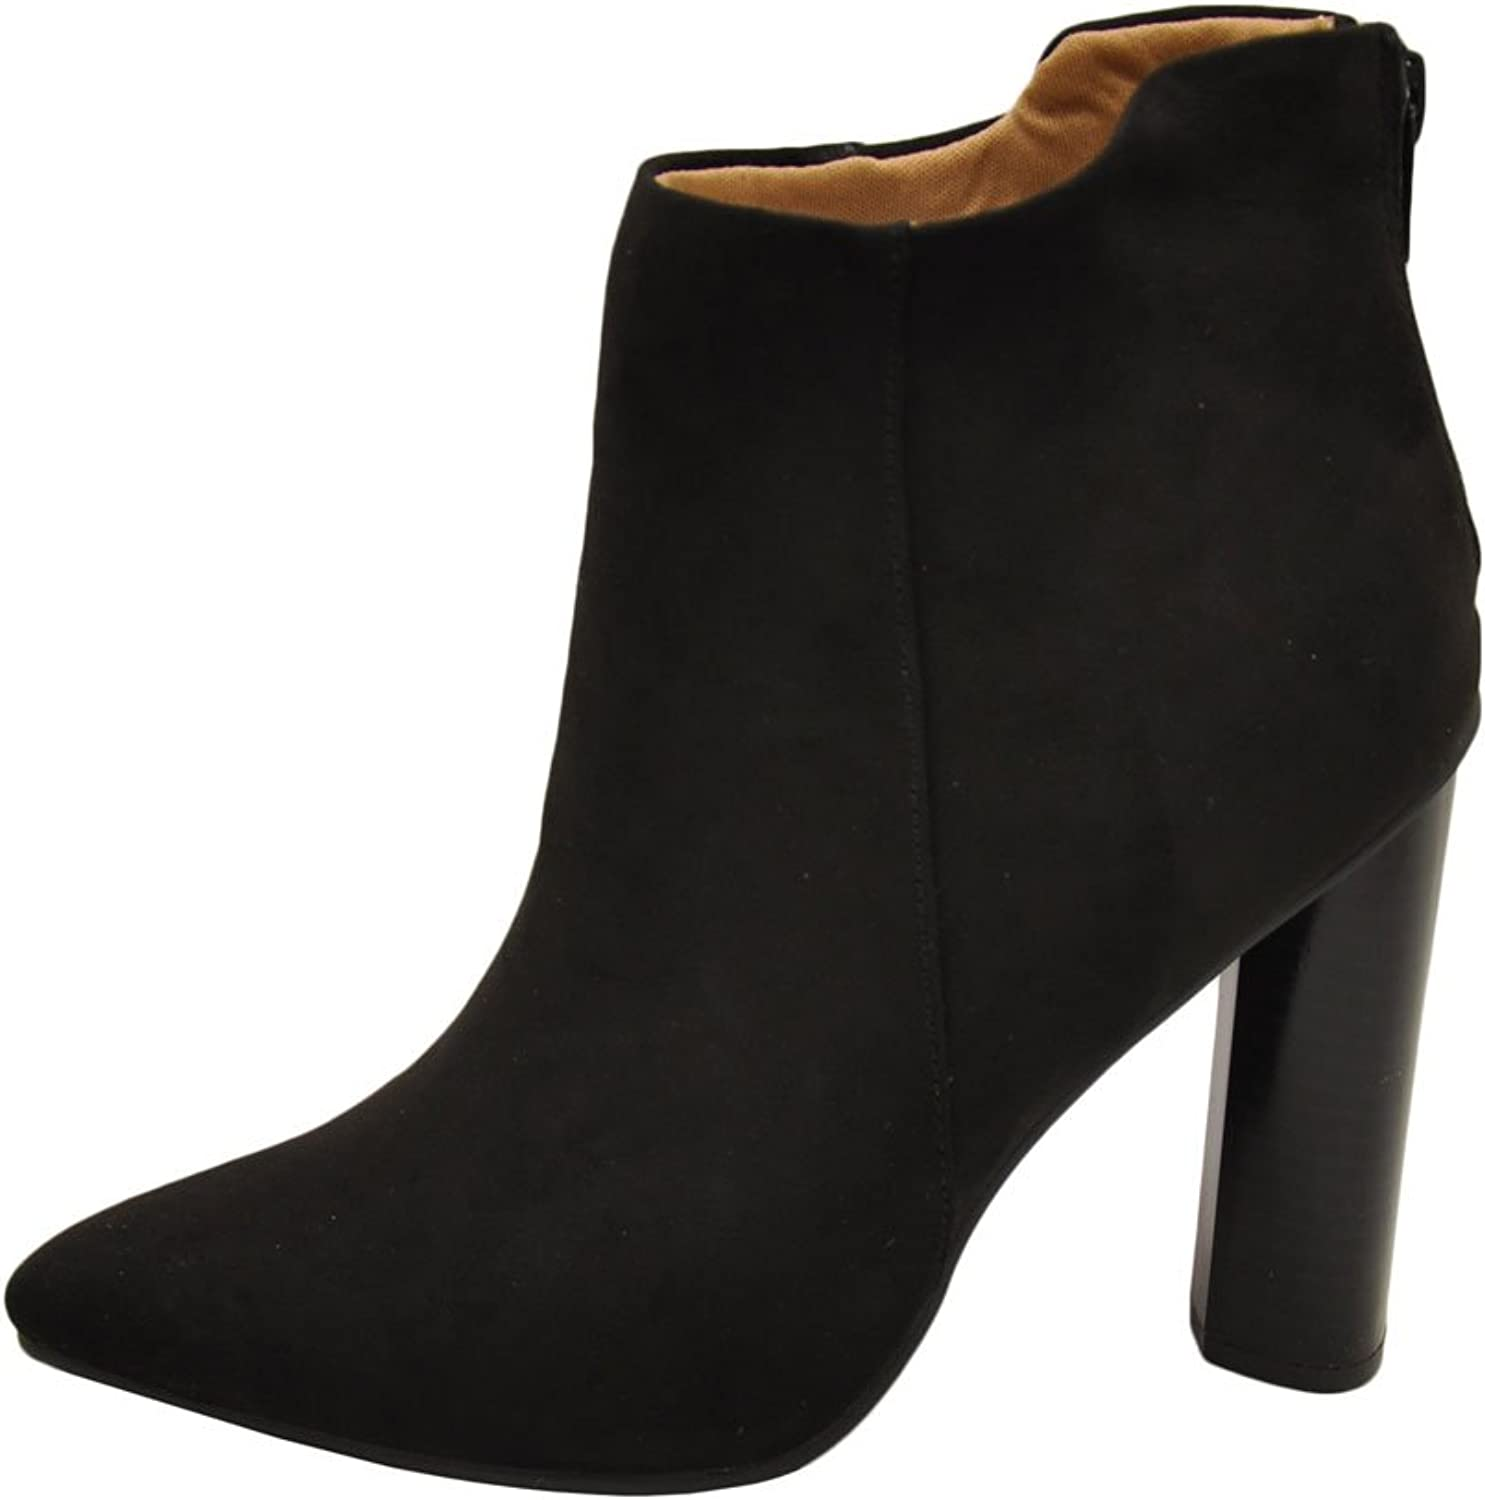 Qupid Parma 06 Women's Pointy Toe Snake Ankle Booties